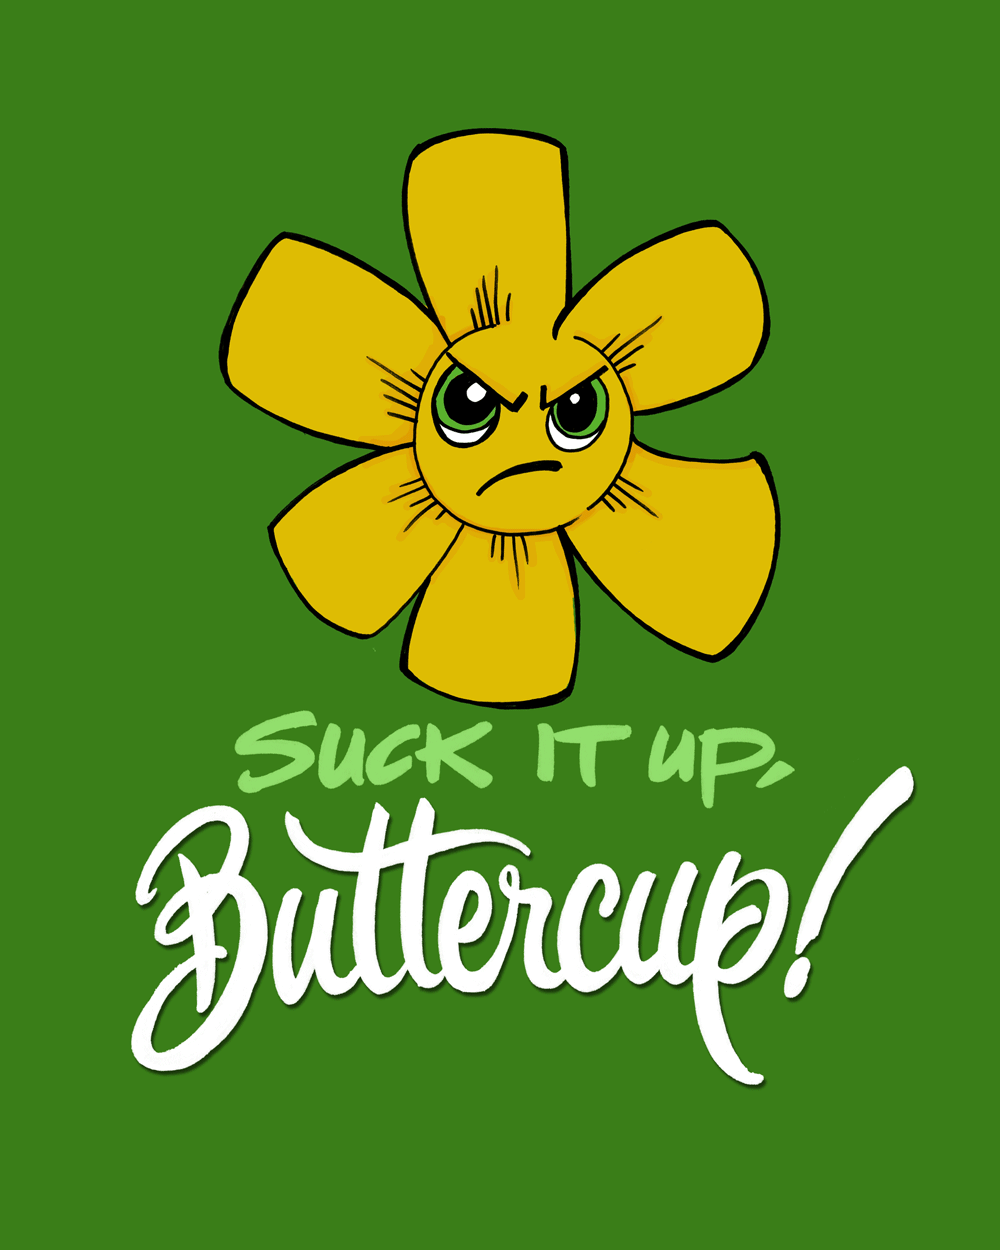 suck-it-up-buttercup-hires.png